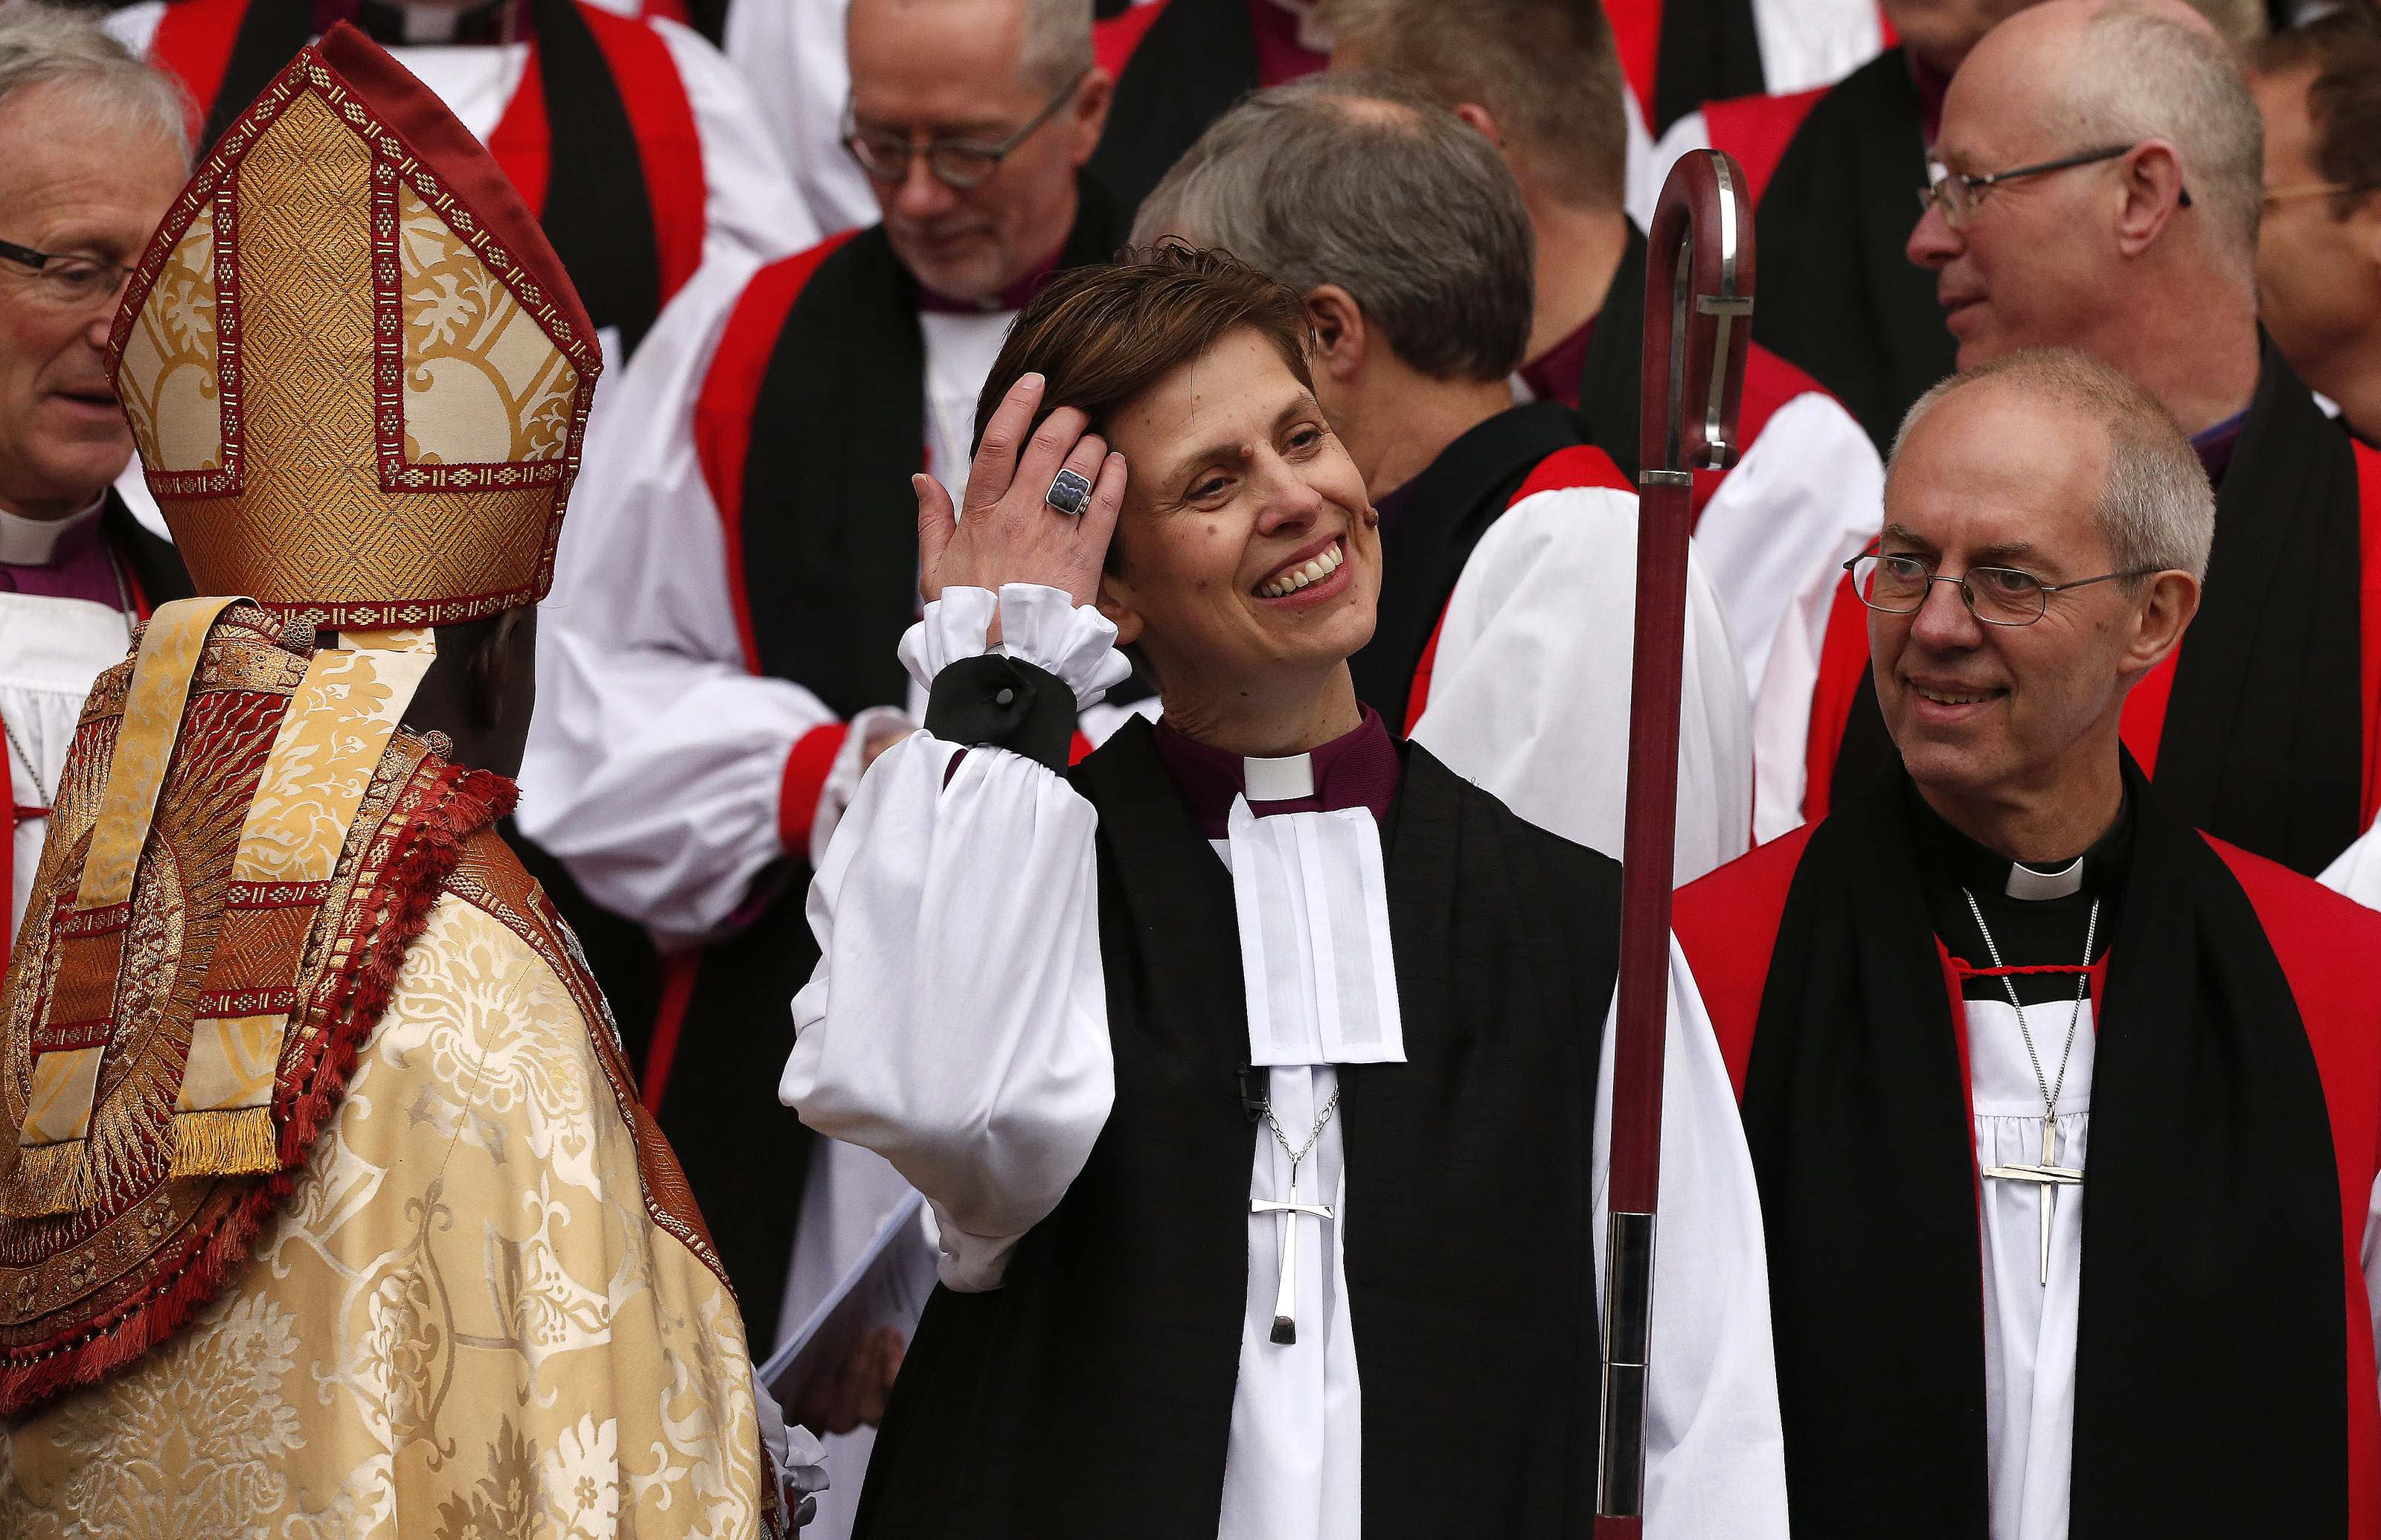 Church of England consecrates first woman bishop